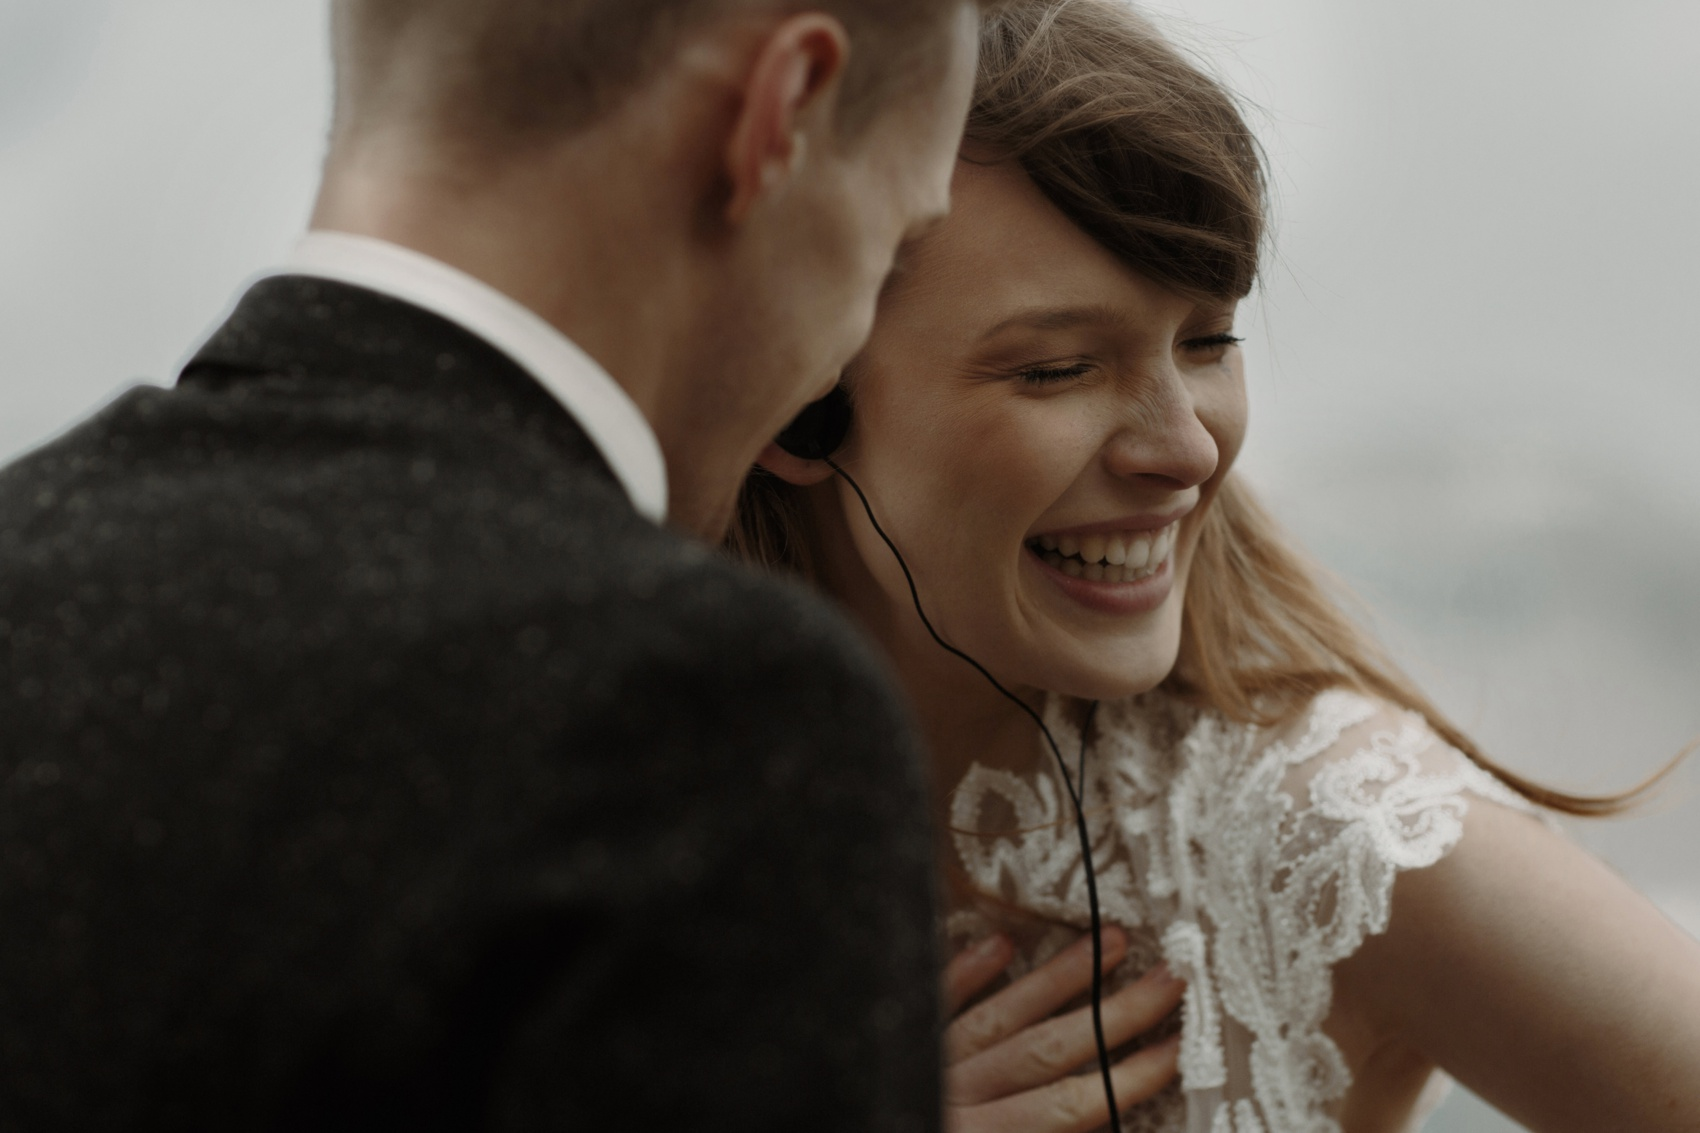 bride laughs with hand on her chest